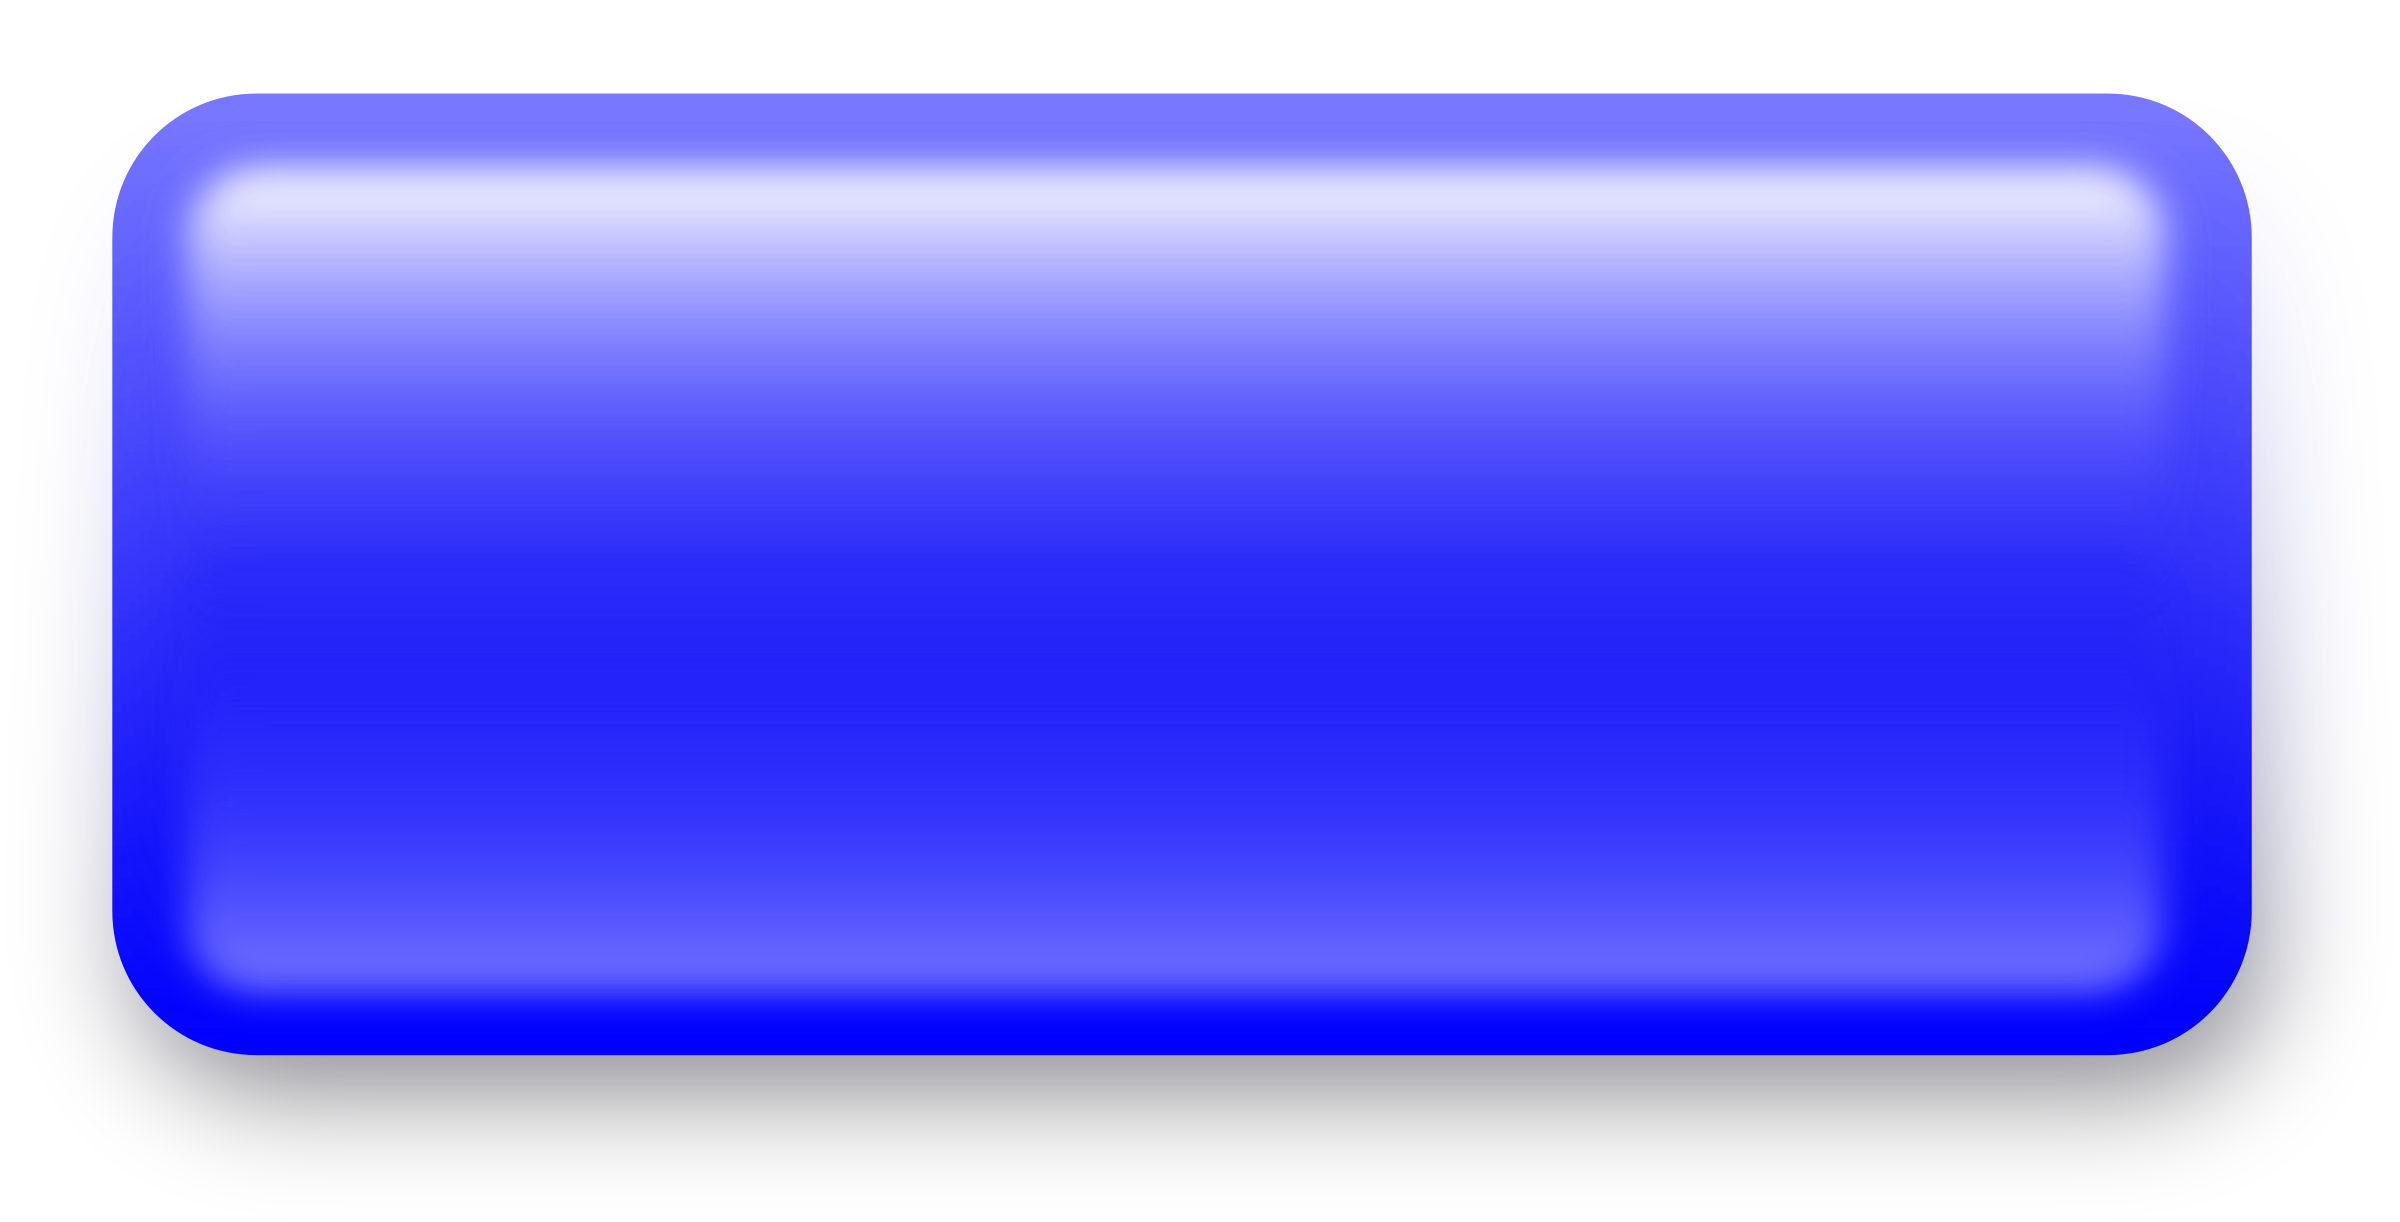 https://openclipart.org/image/2400px/svg_to_png/29078/J-Alves-blue-3D-rectangle.png 3d